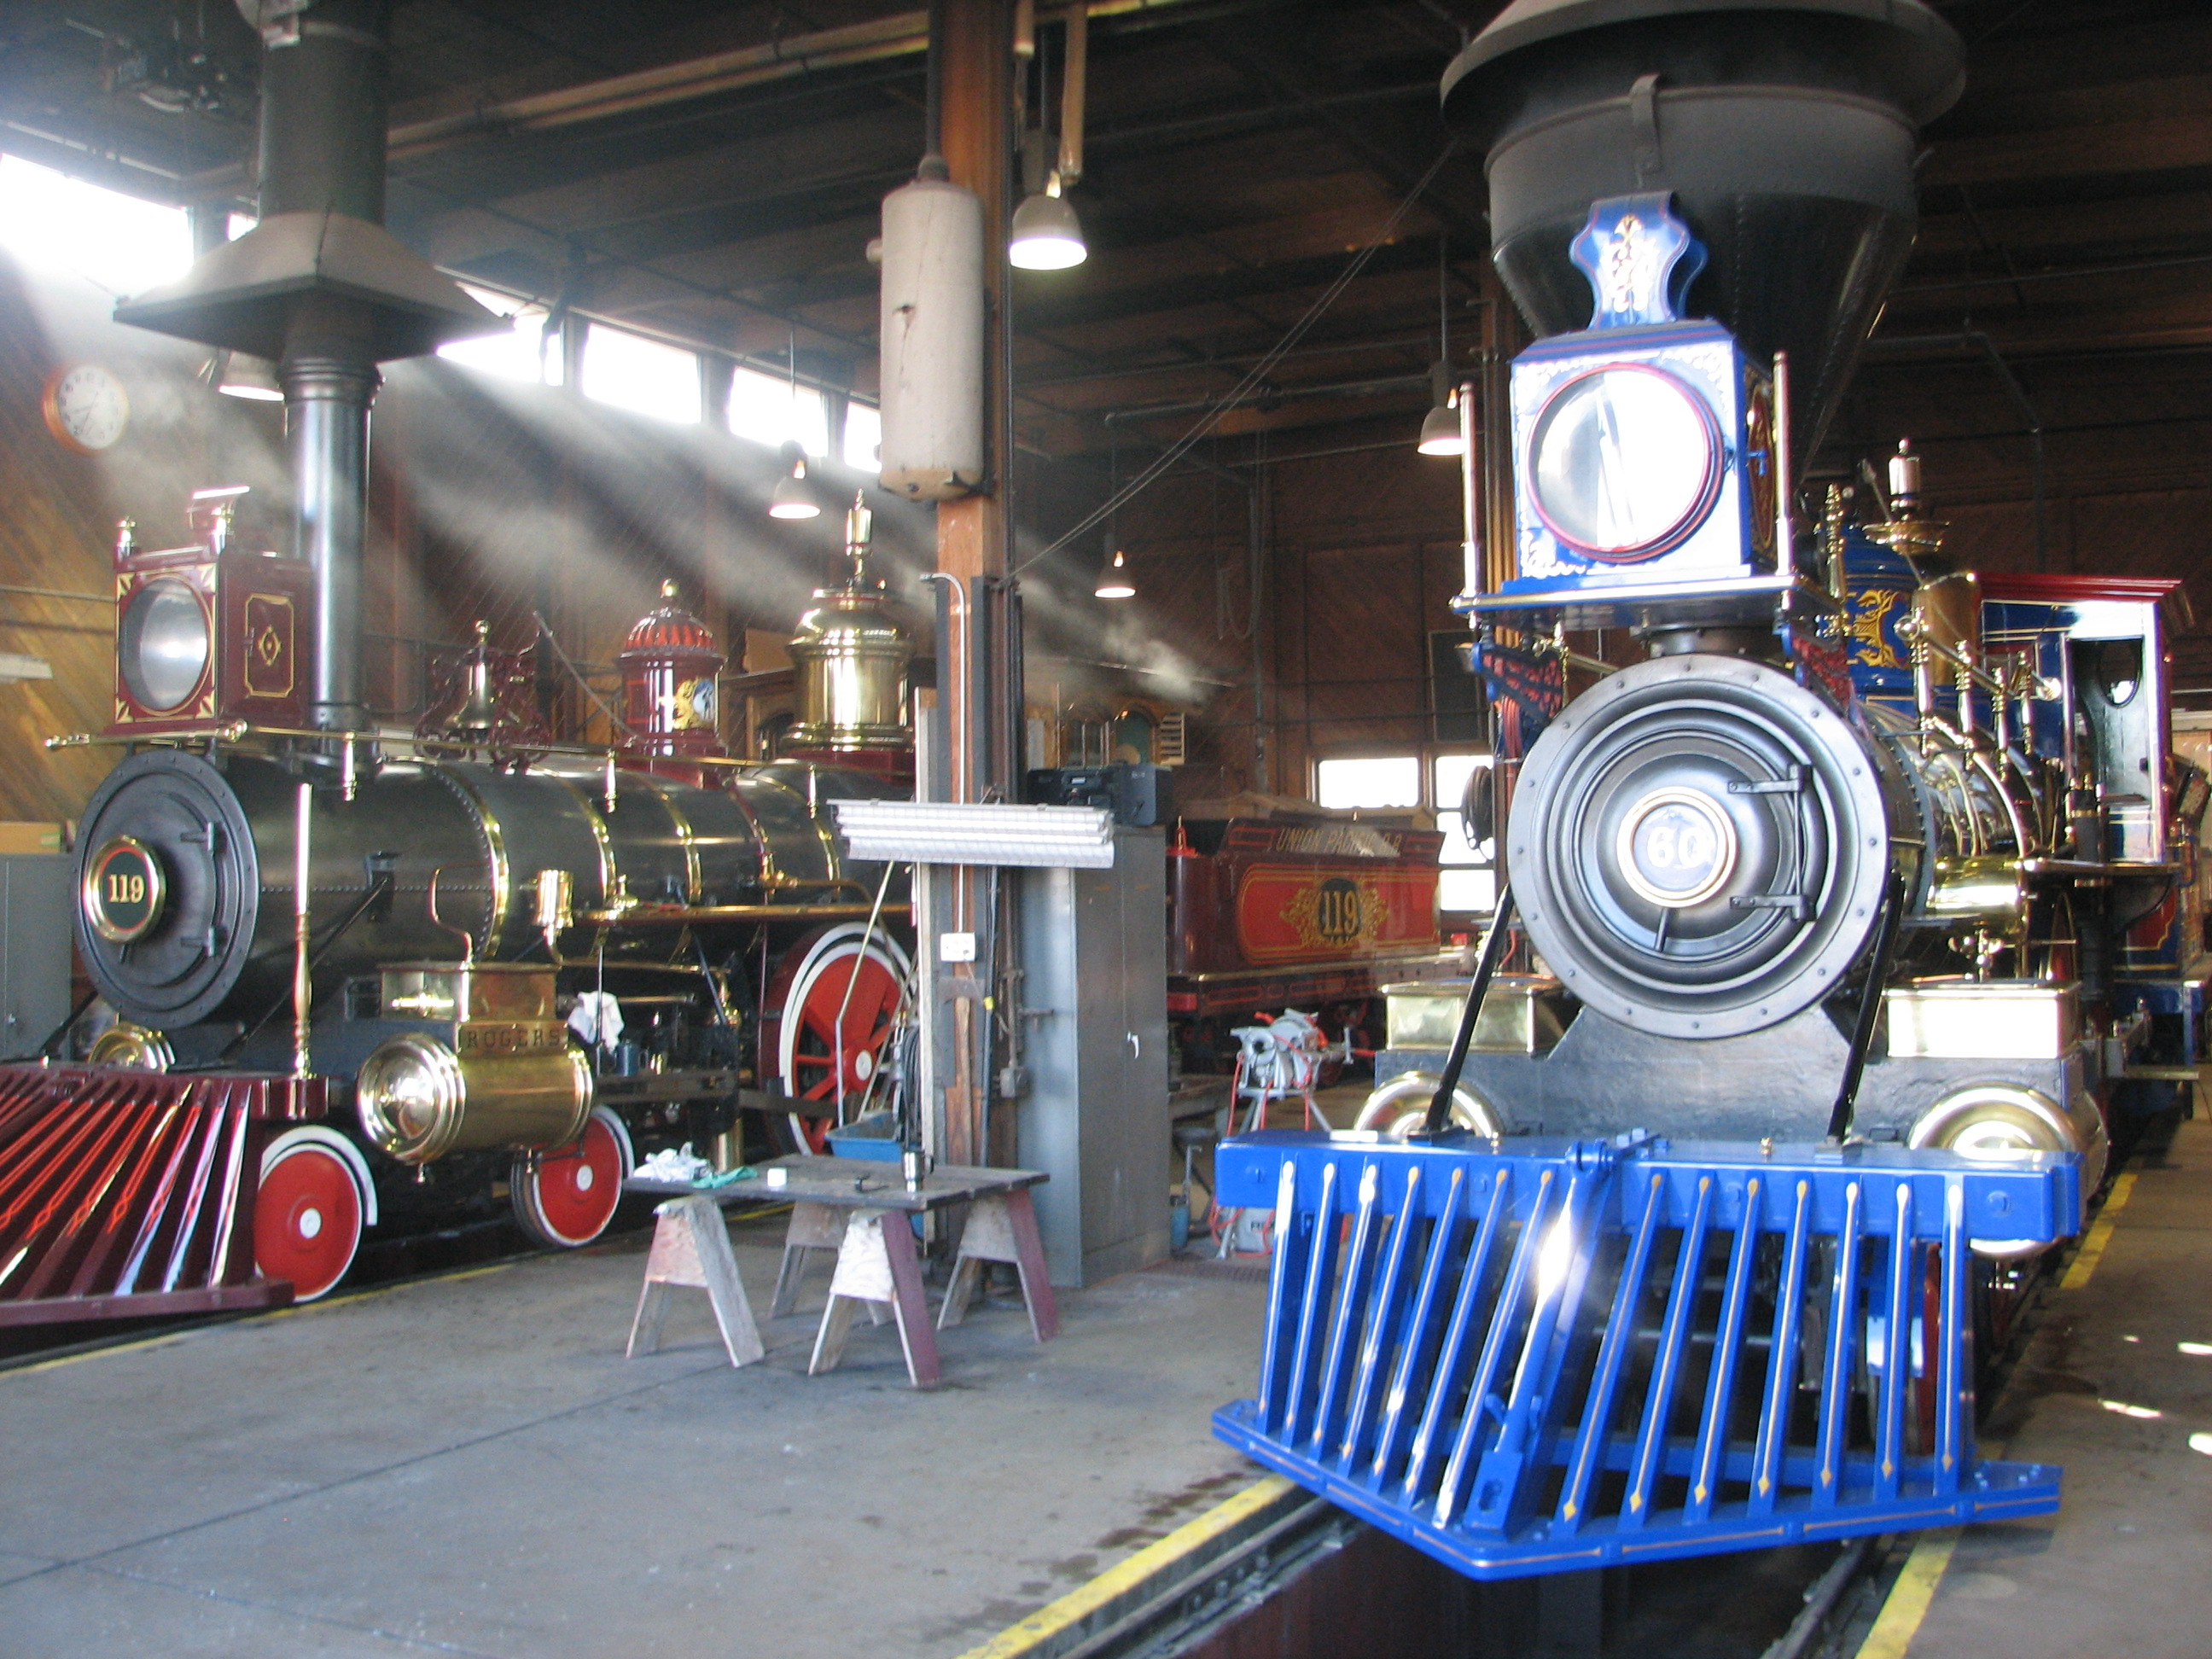 Locomotives No. 119 & Jupiter in the engine house.